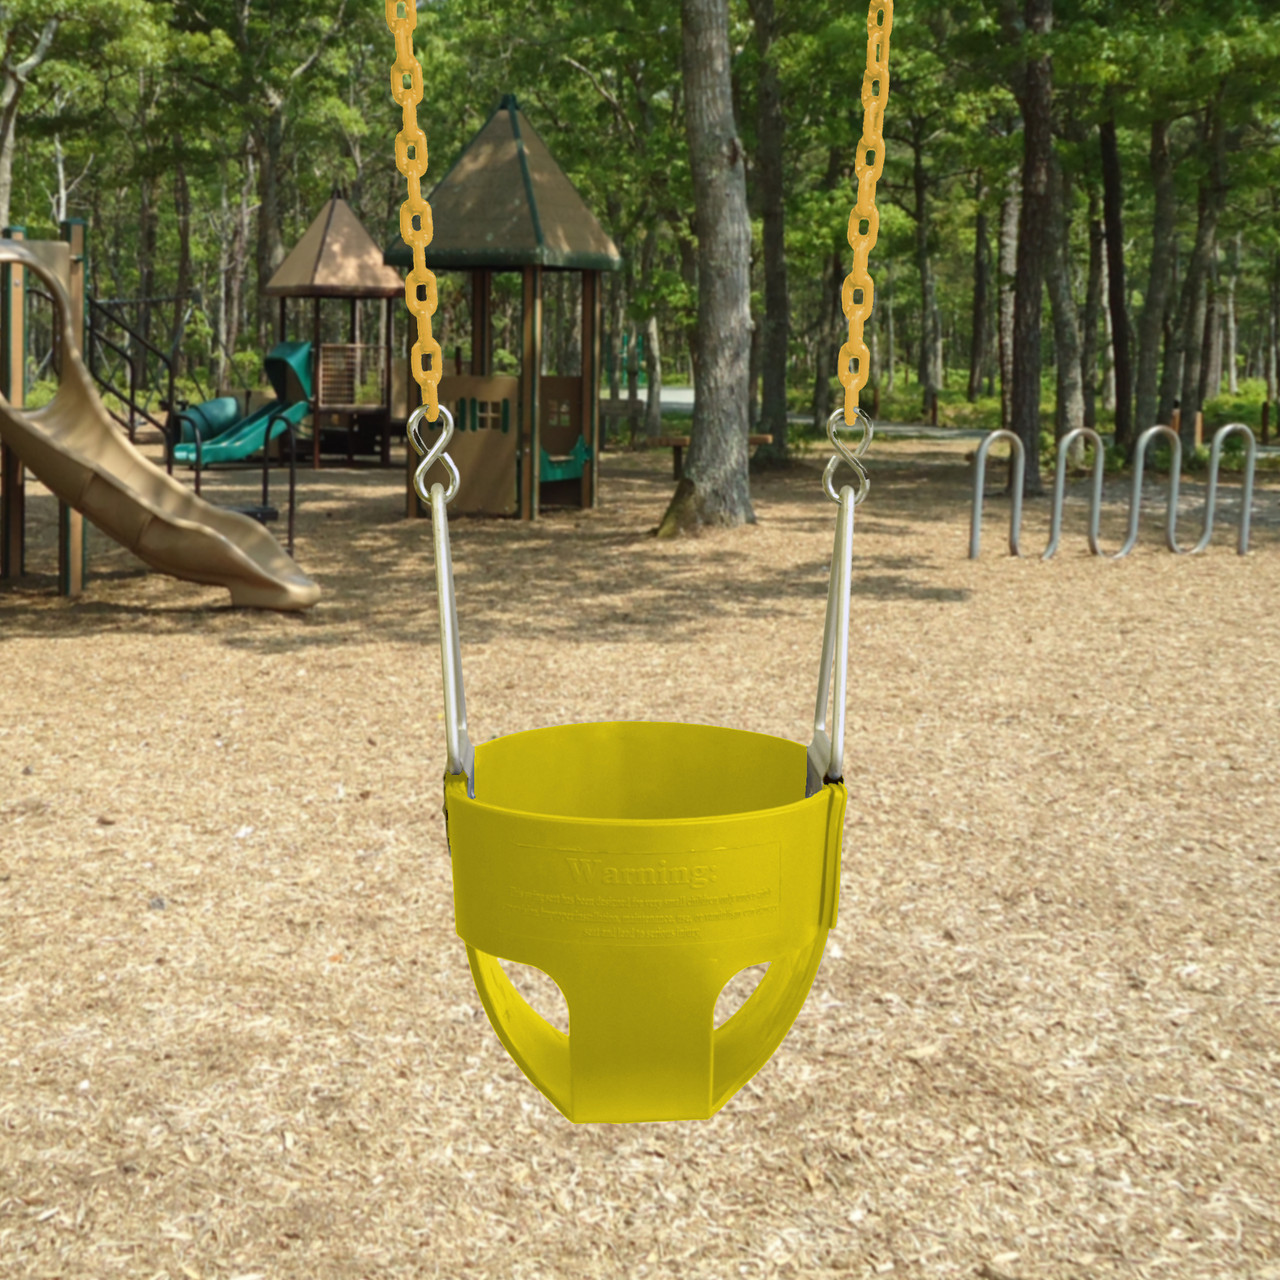 Commercial Full Bucket Swing Seat with Plastisol Chain